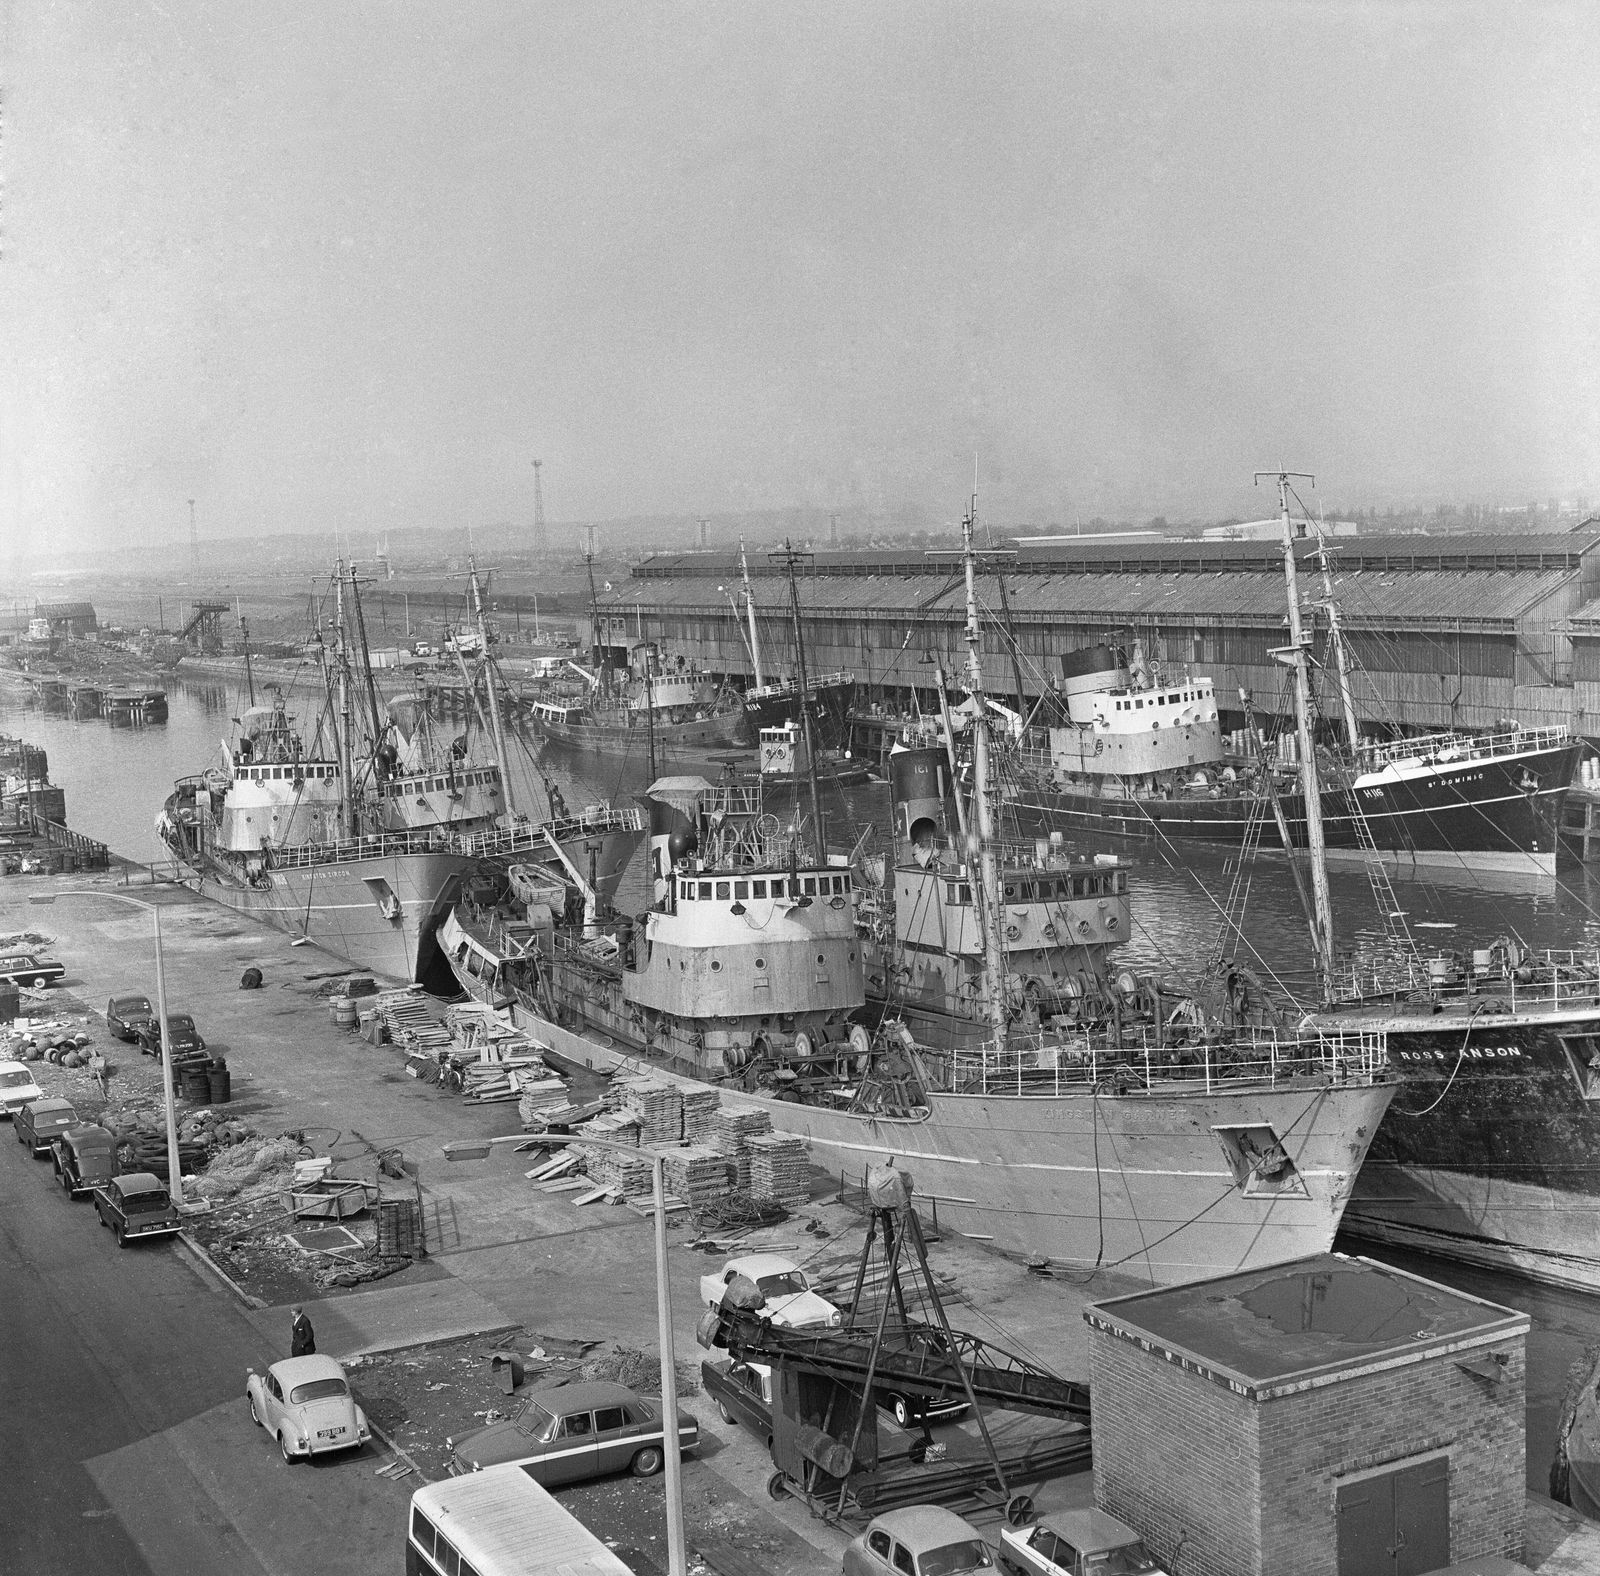 Trawlers tied up in St Andrews Dock, Hull 25th April 1968